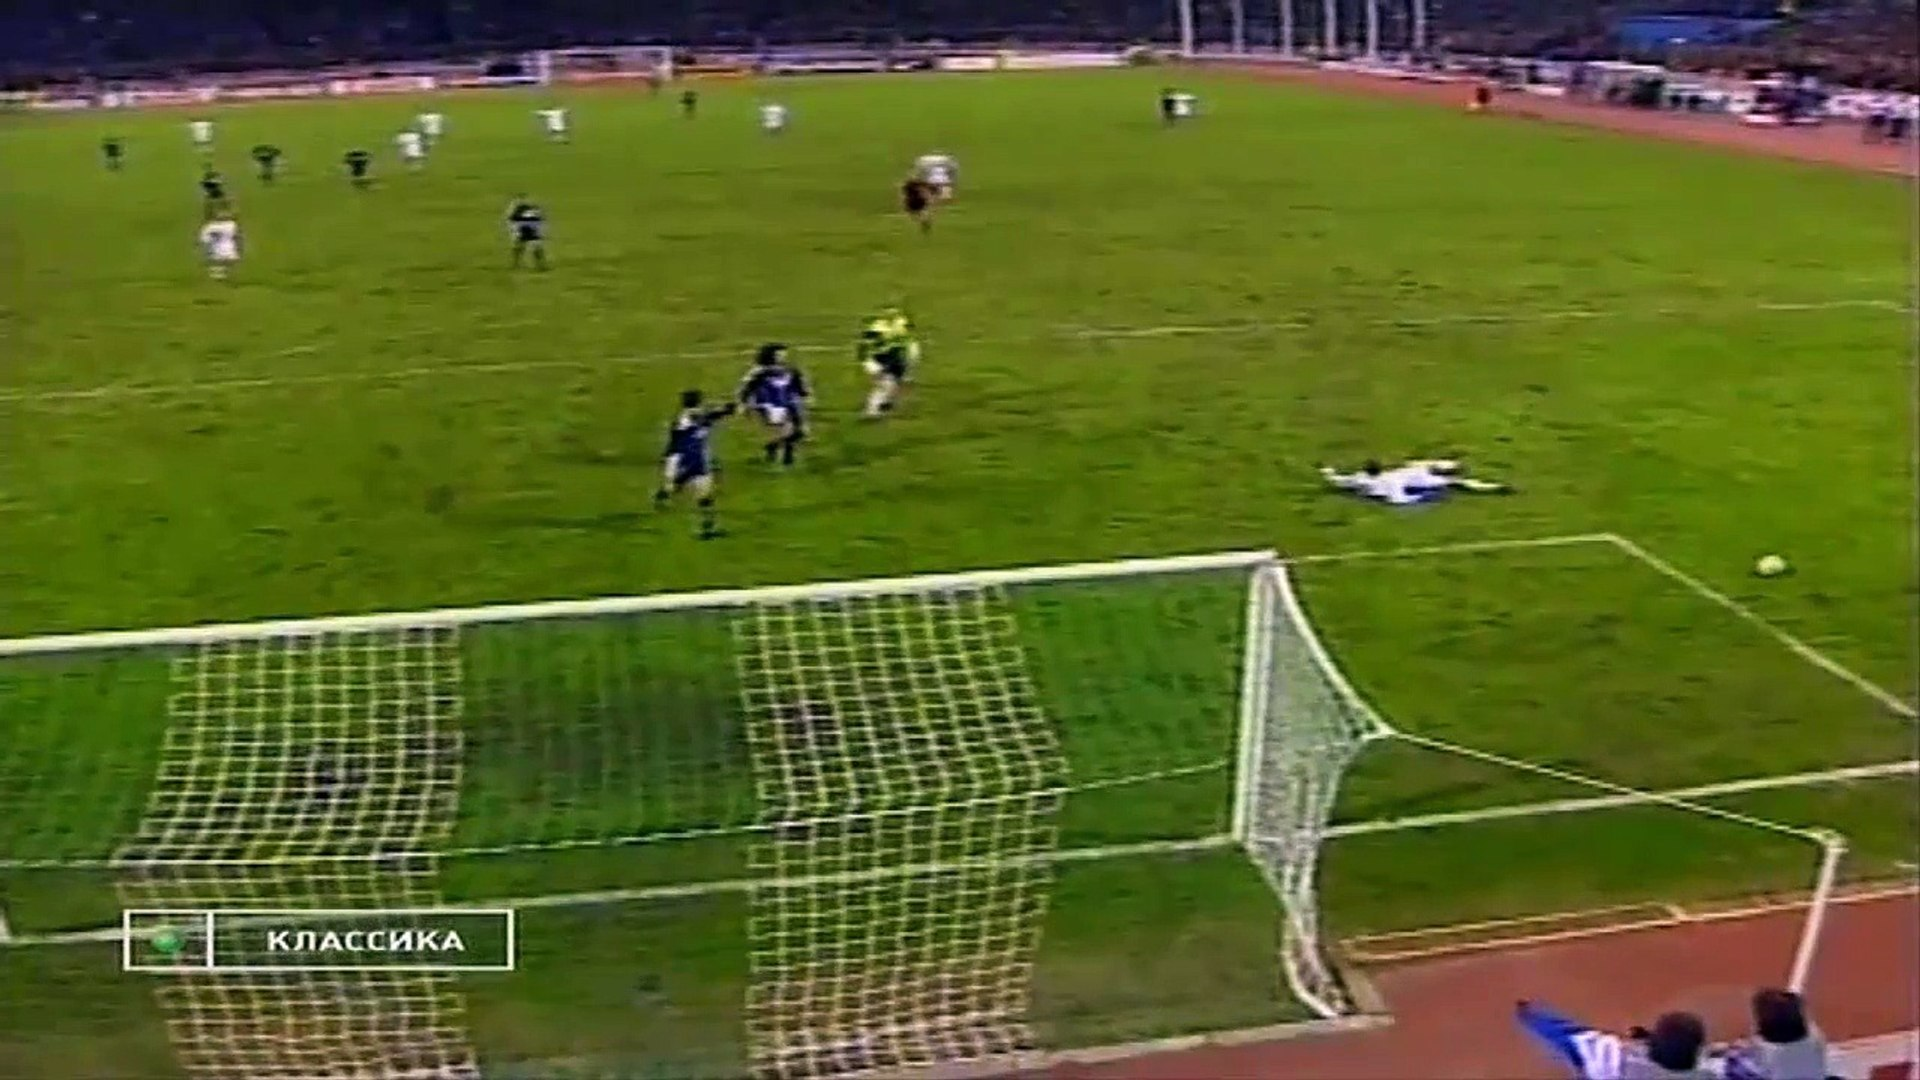 dynamo kyiv 2 0 real madrid 1998 99 video dailymotion dynamo kyiv 2 0 real madrid 1998 99